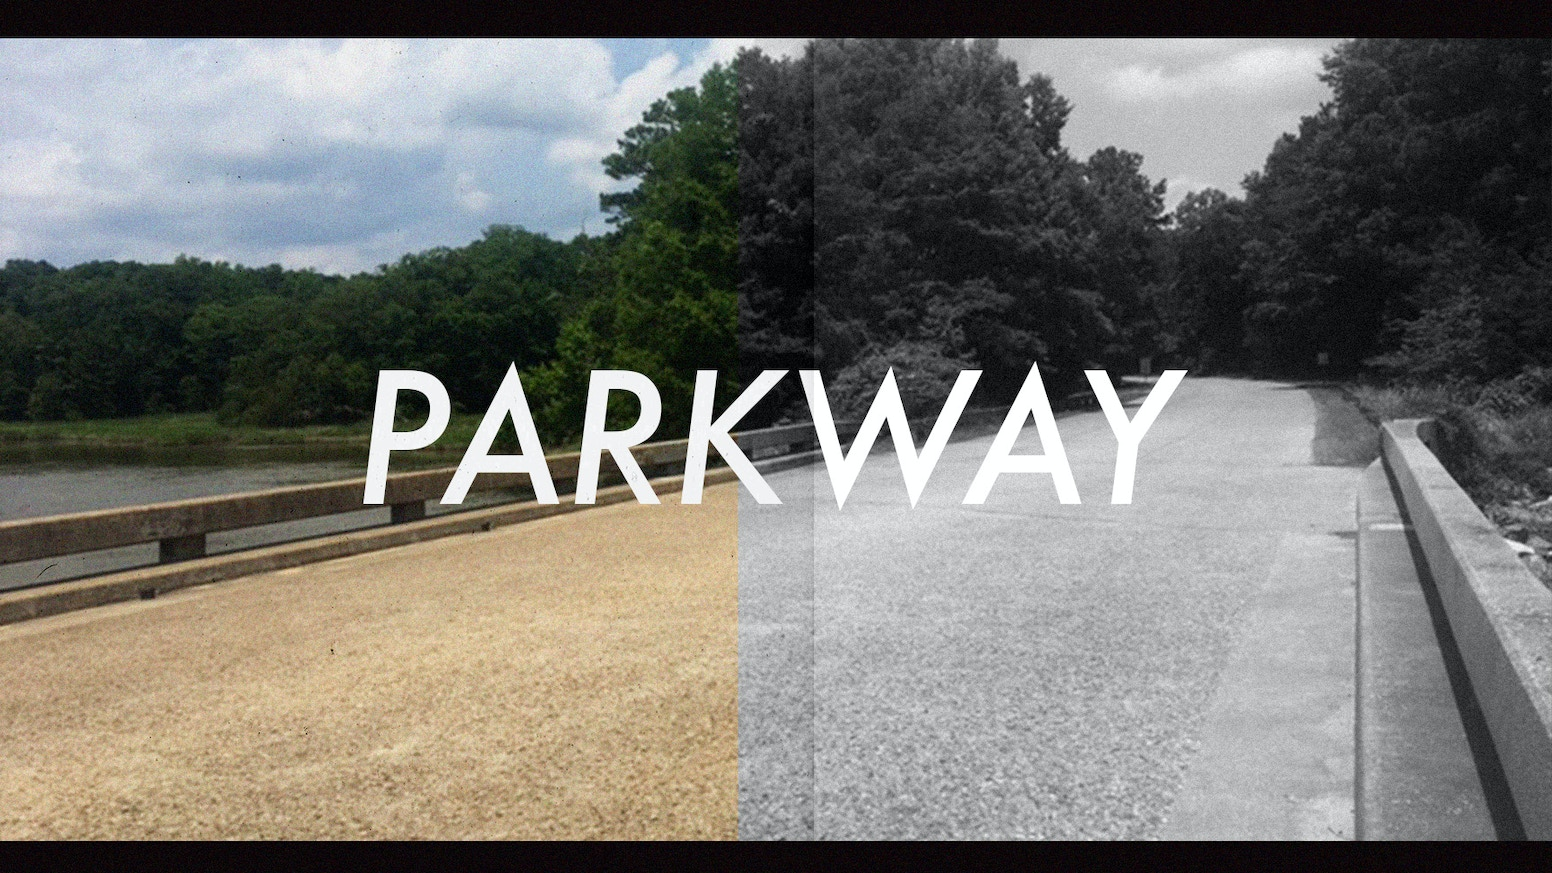 Parkway: A USC MFA Thesis Film